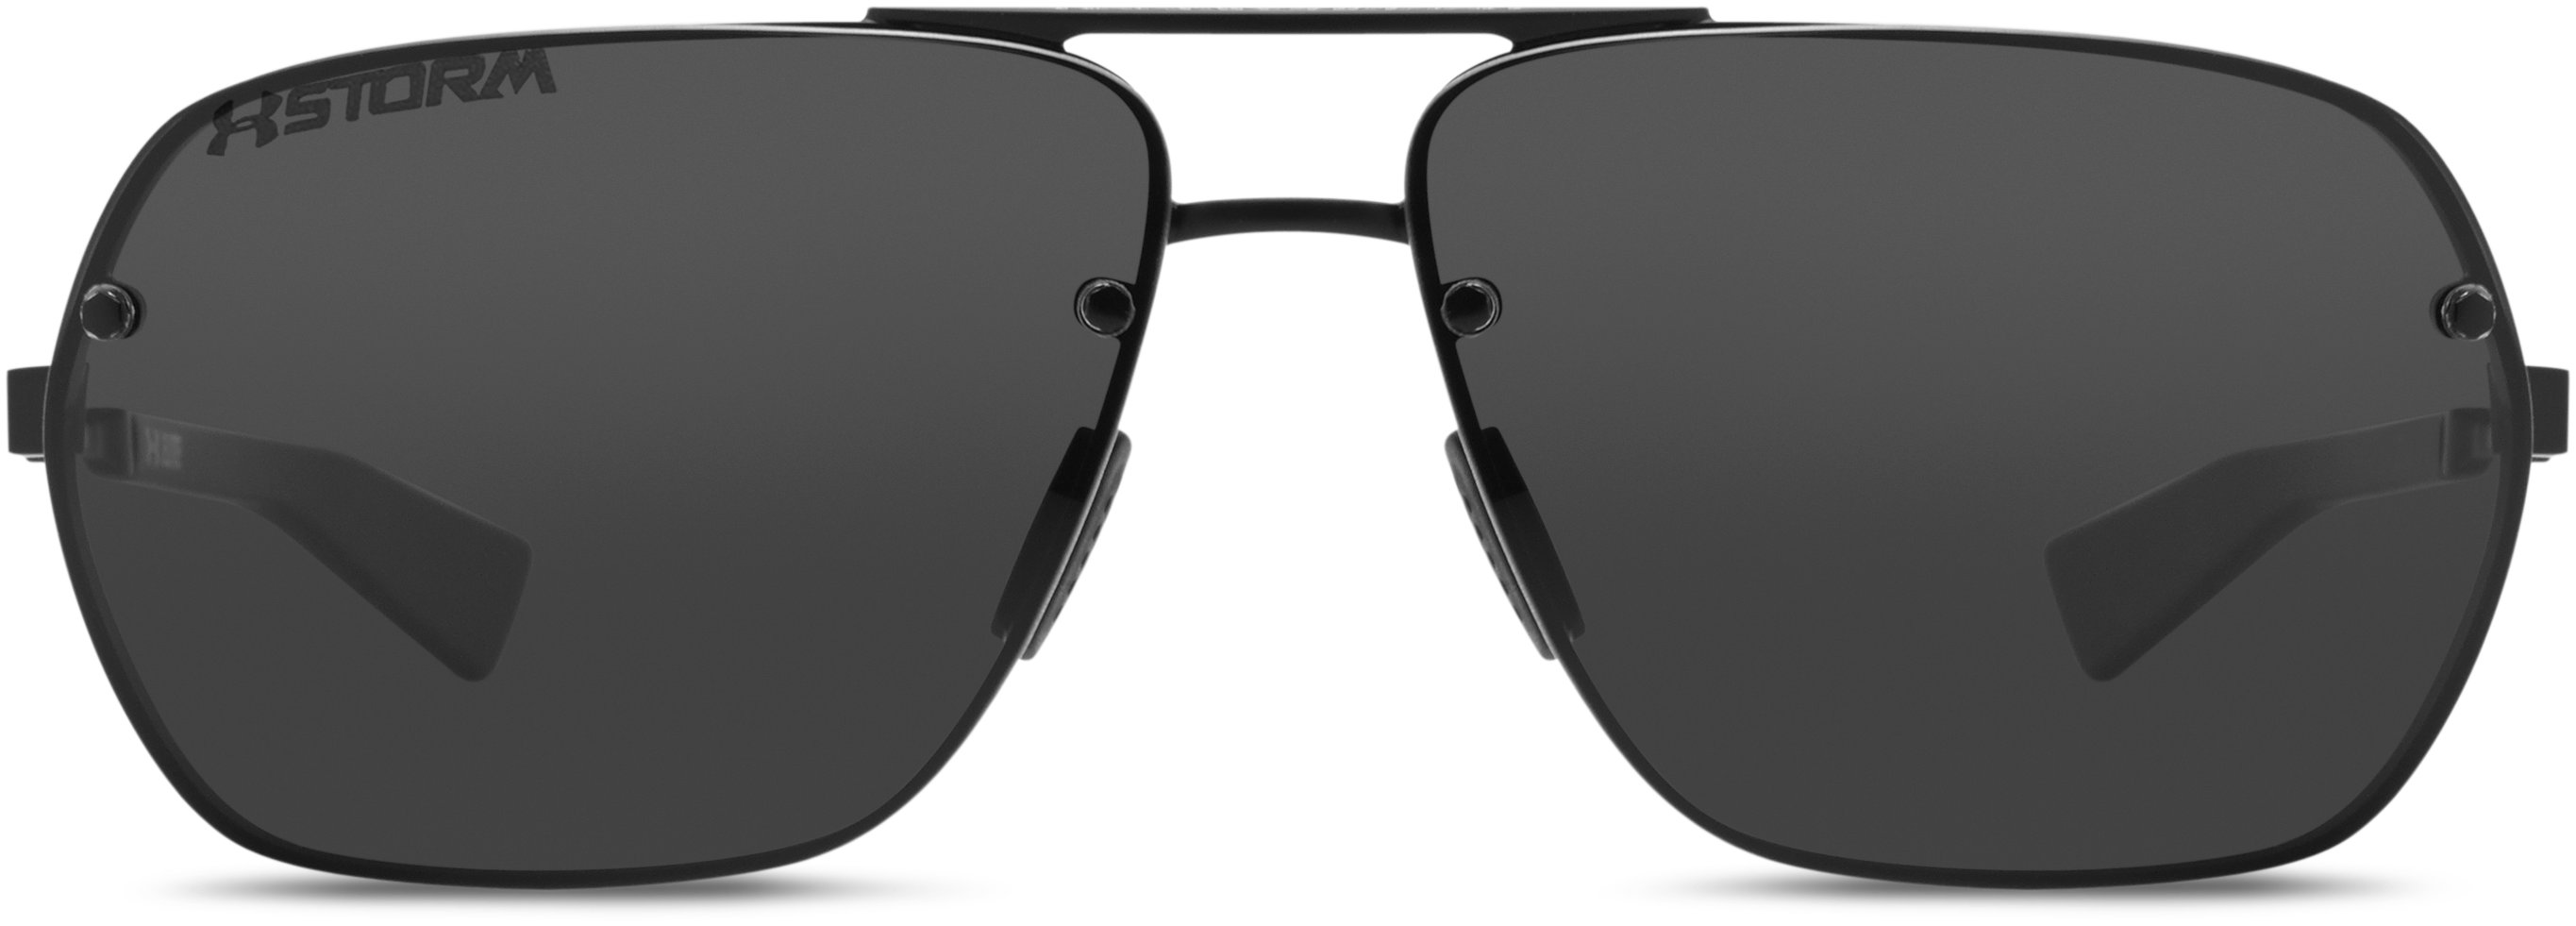 UA Hi-Roll Storm Polarized Sunglasses, Satin Black, undefined